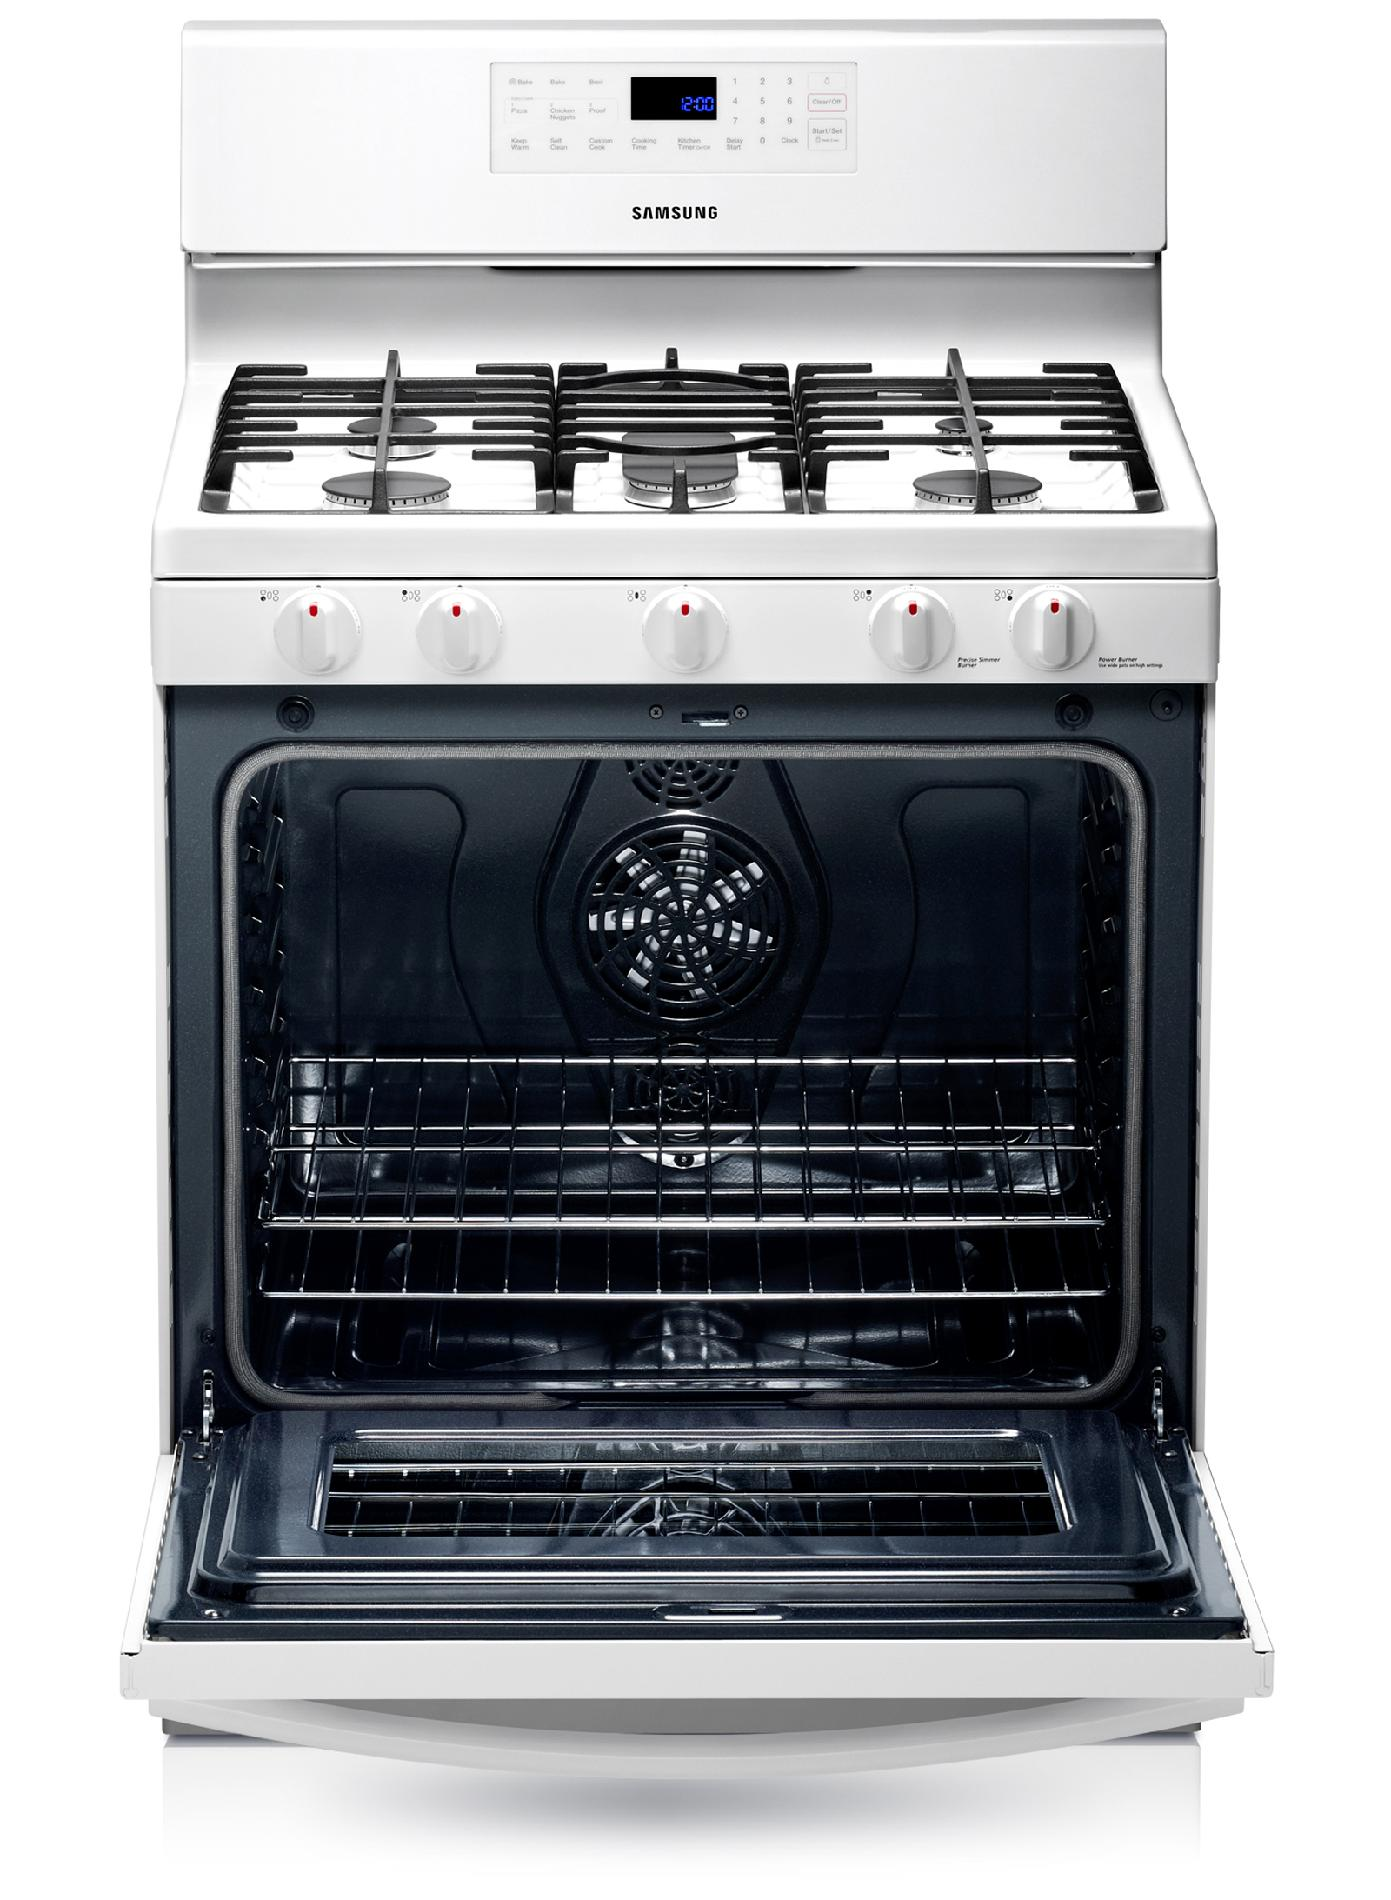 Samsung 5.8 cu. ft. Gas Range -  White